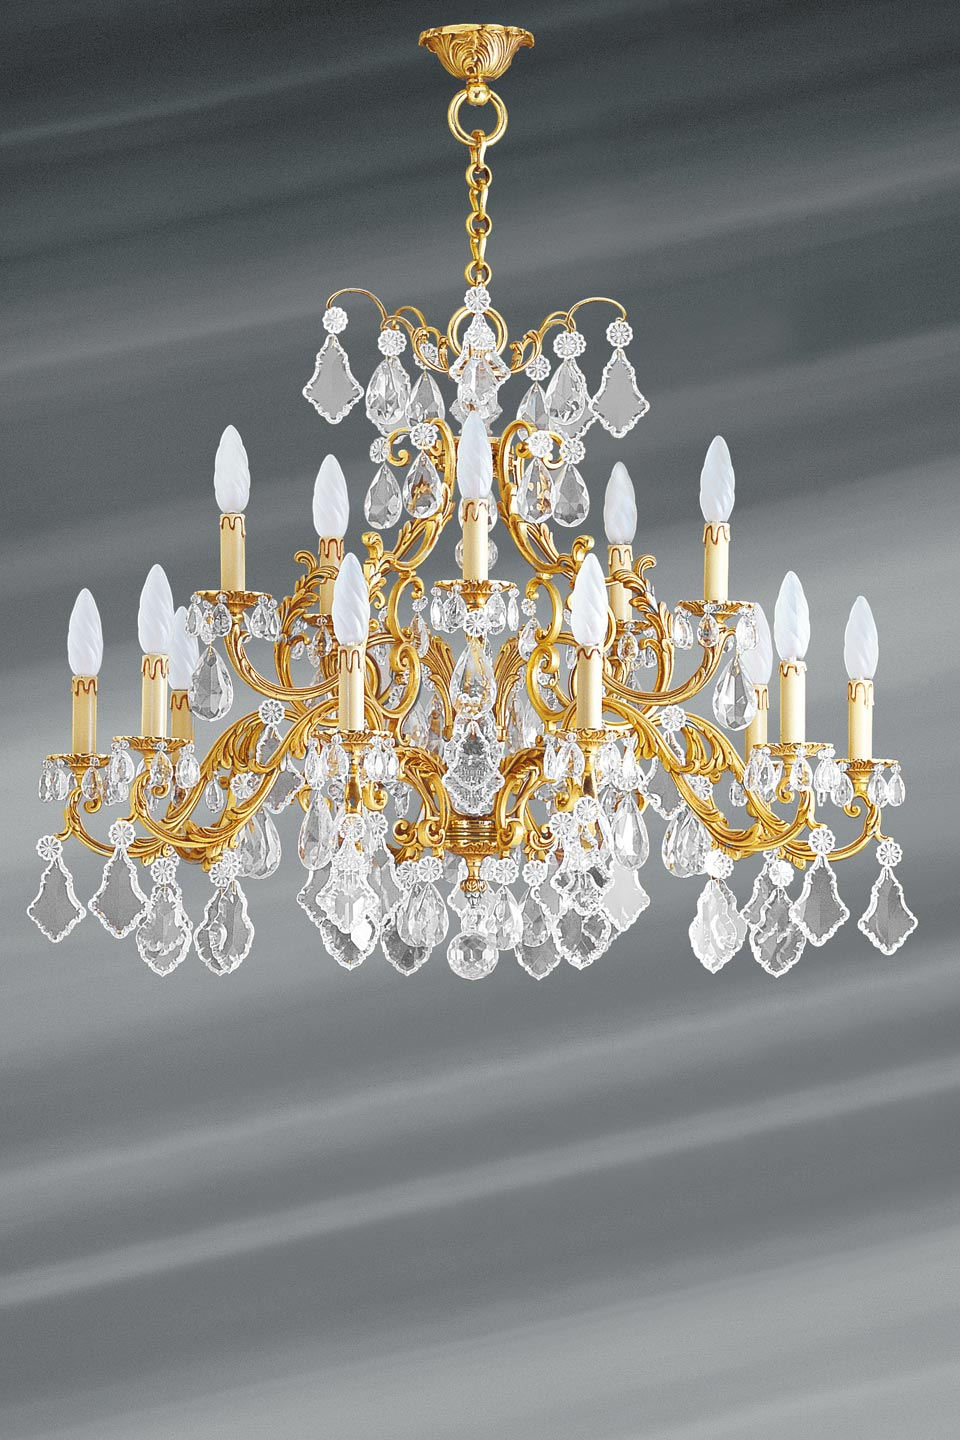 lustre dor louis xv cristal de boh me 15 lumi res lucien gau luminaires classiques de. Black Bedroom Furniture Sets. Home Design Ideas